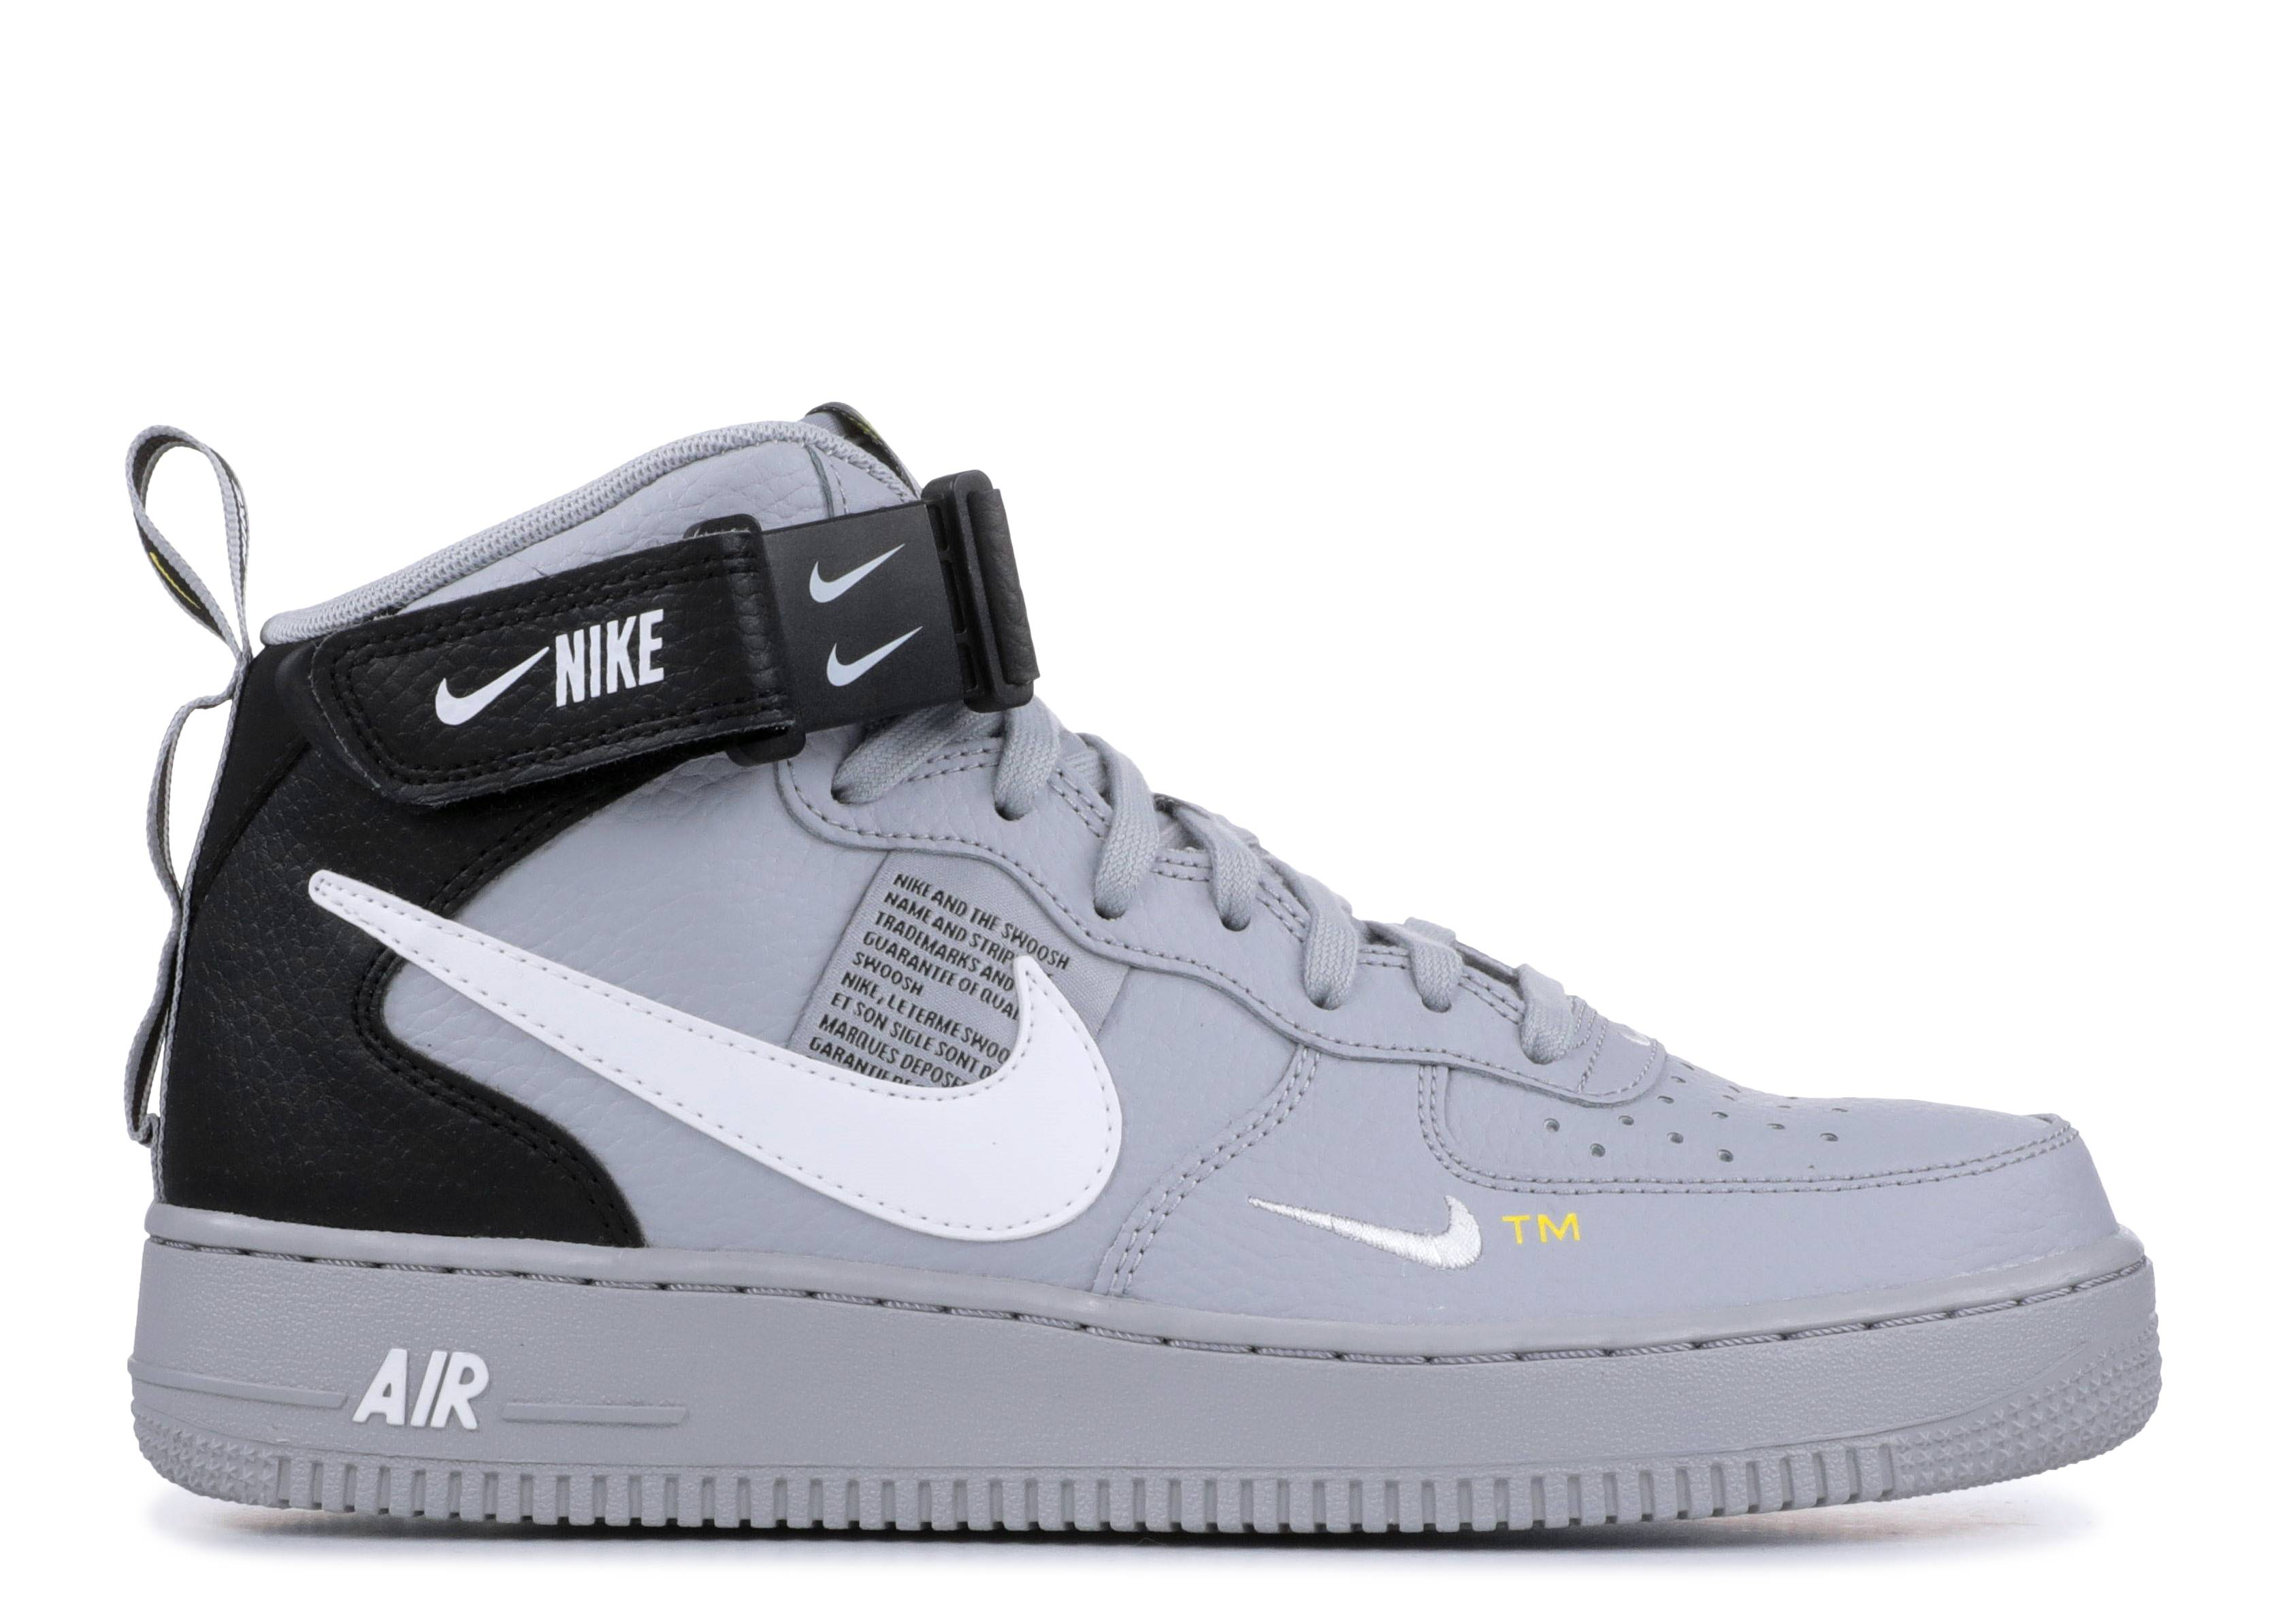 a9a6e7f5d5c4 Air Force 1 Mid  07 Lv8 - Nike - 804609 006 - wolf grey white-black ...